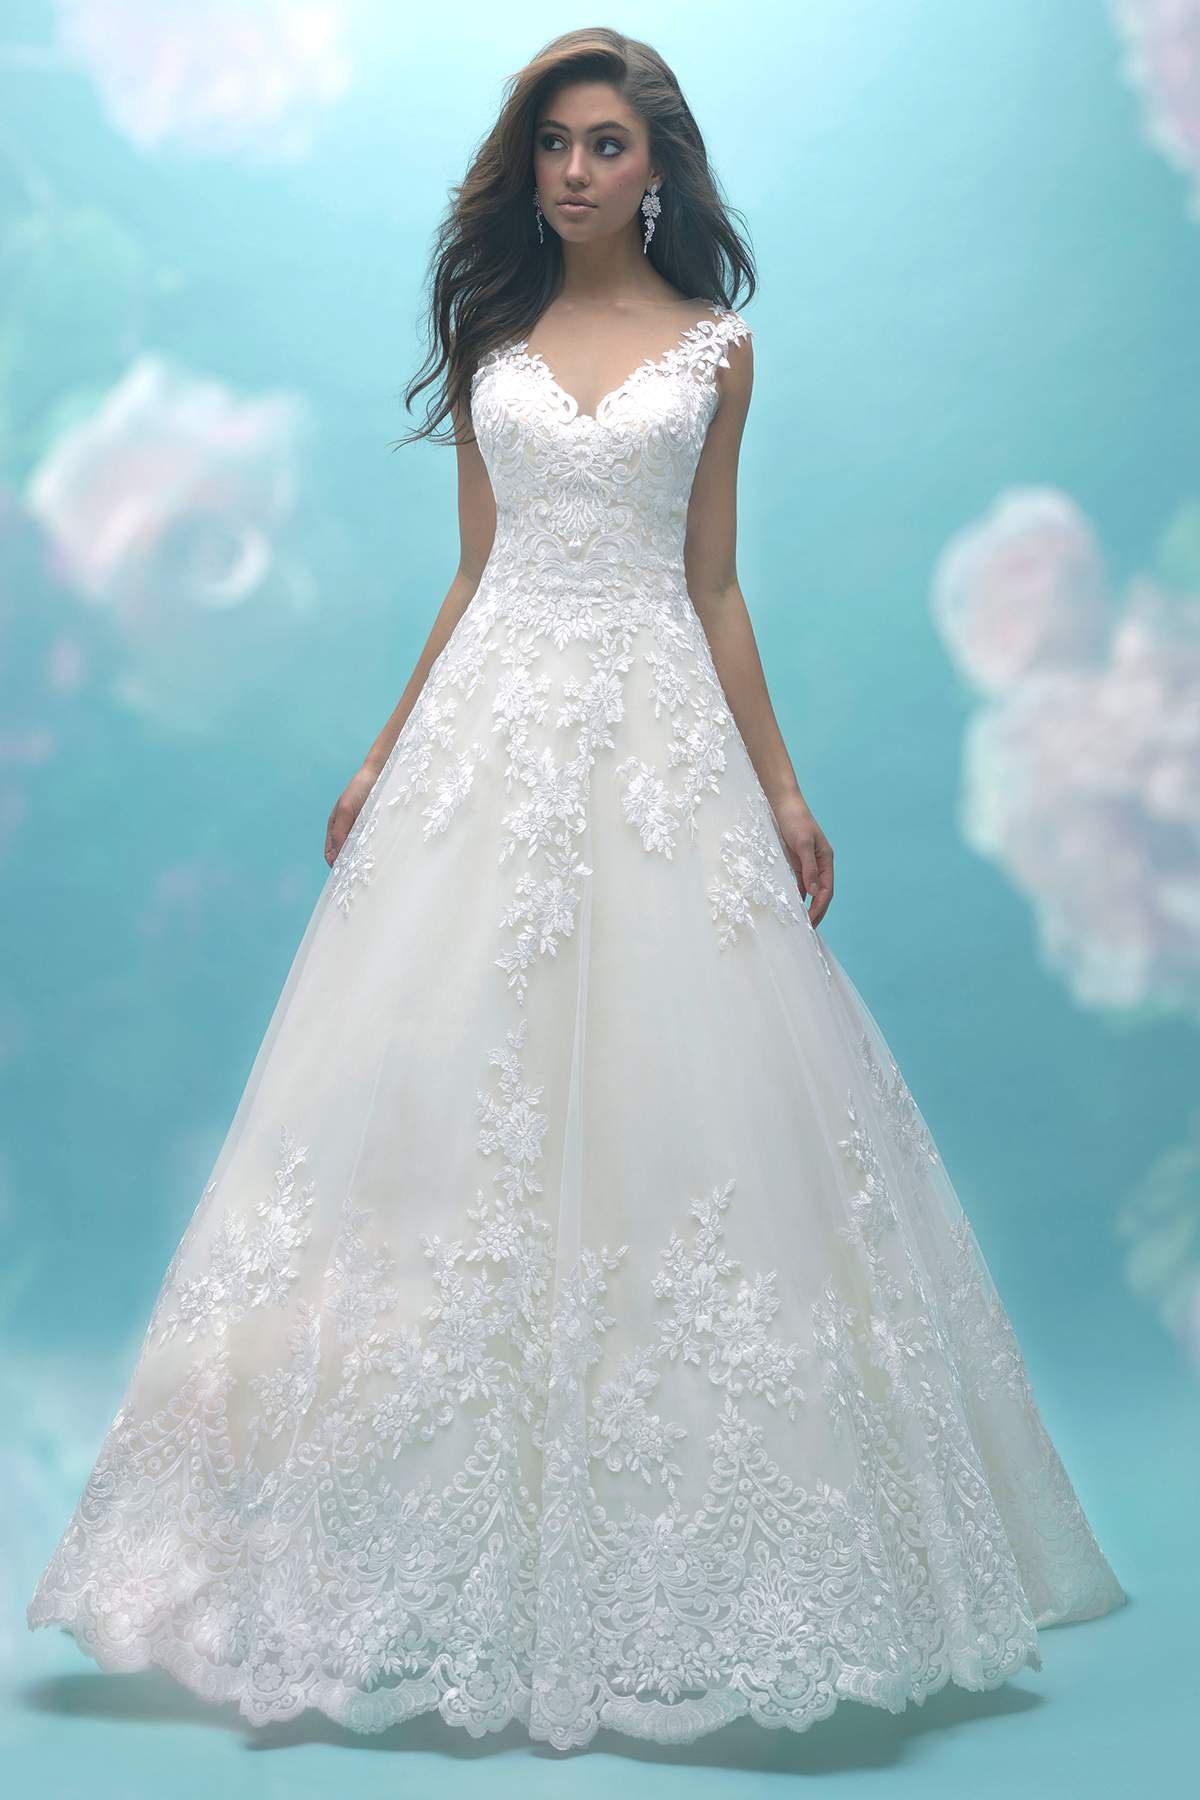 d799656f516 Style 9470 by Allure Bridals - Find Your Dream Dress